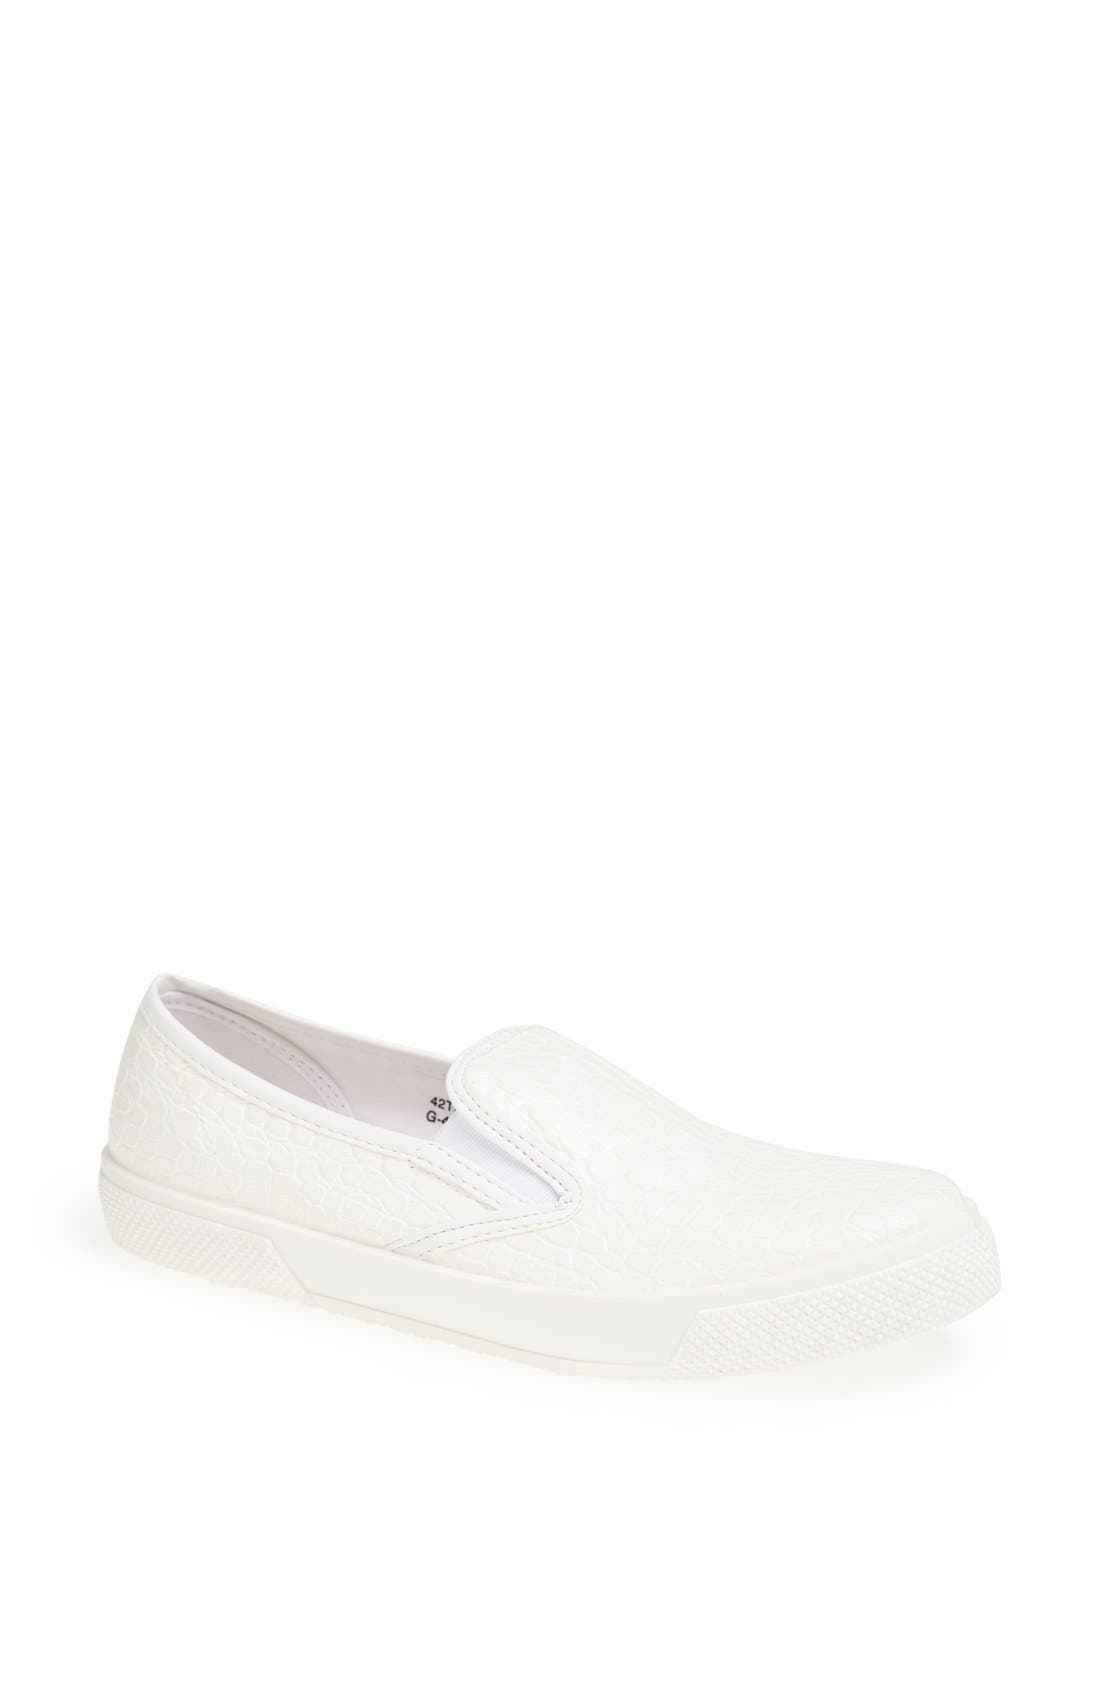 Main Image - Topshop 'Tika' Slip-On